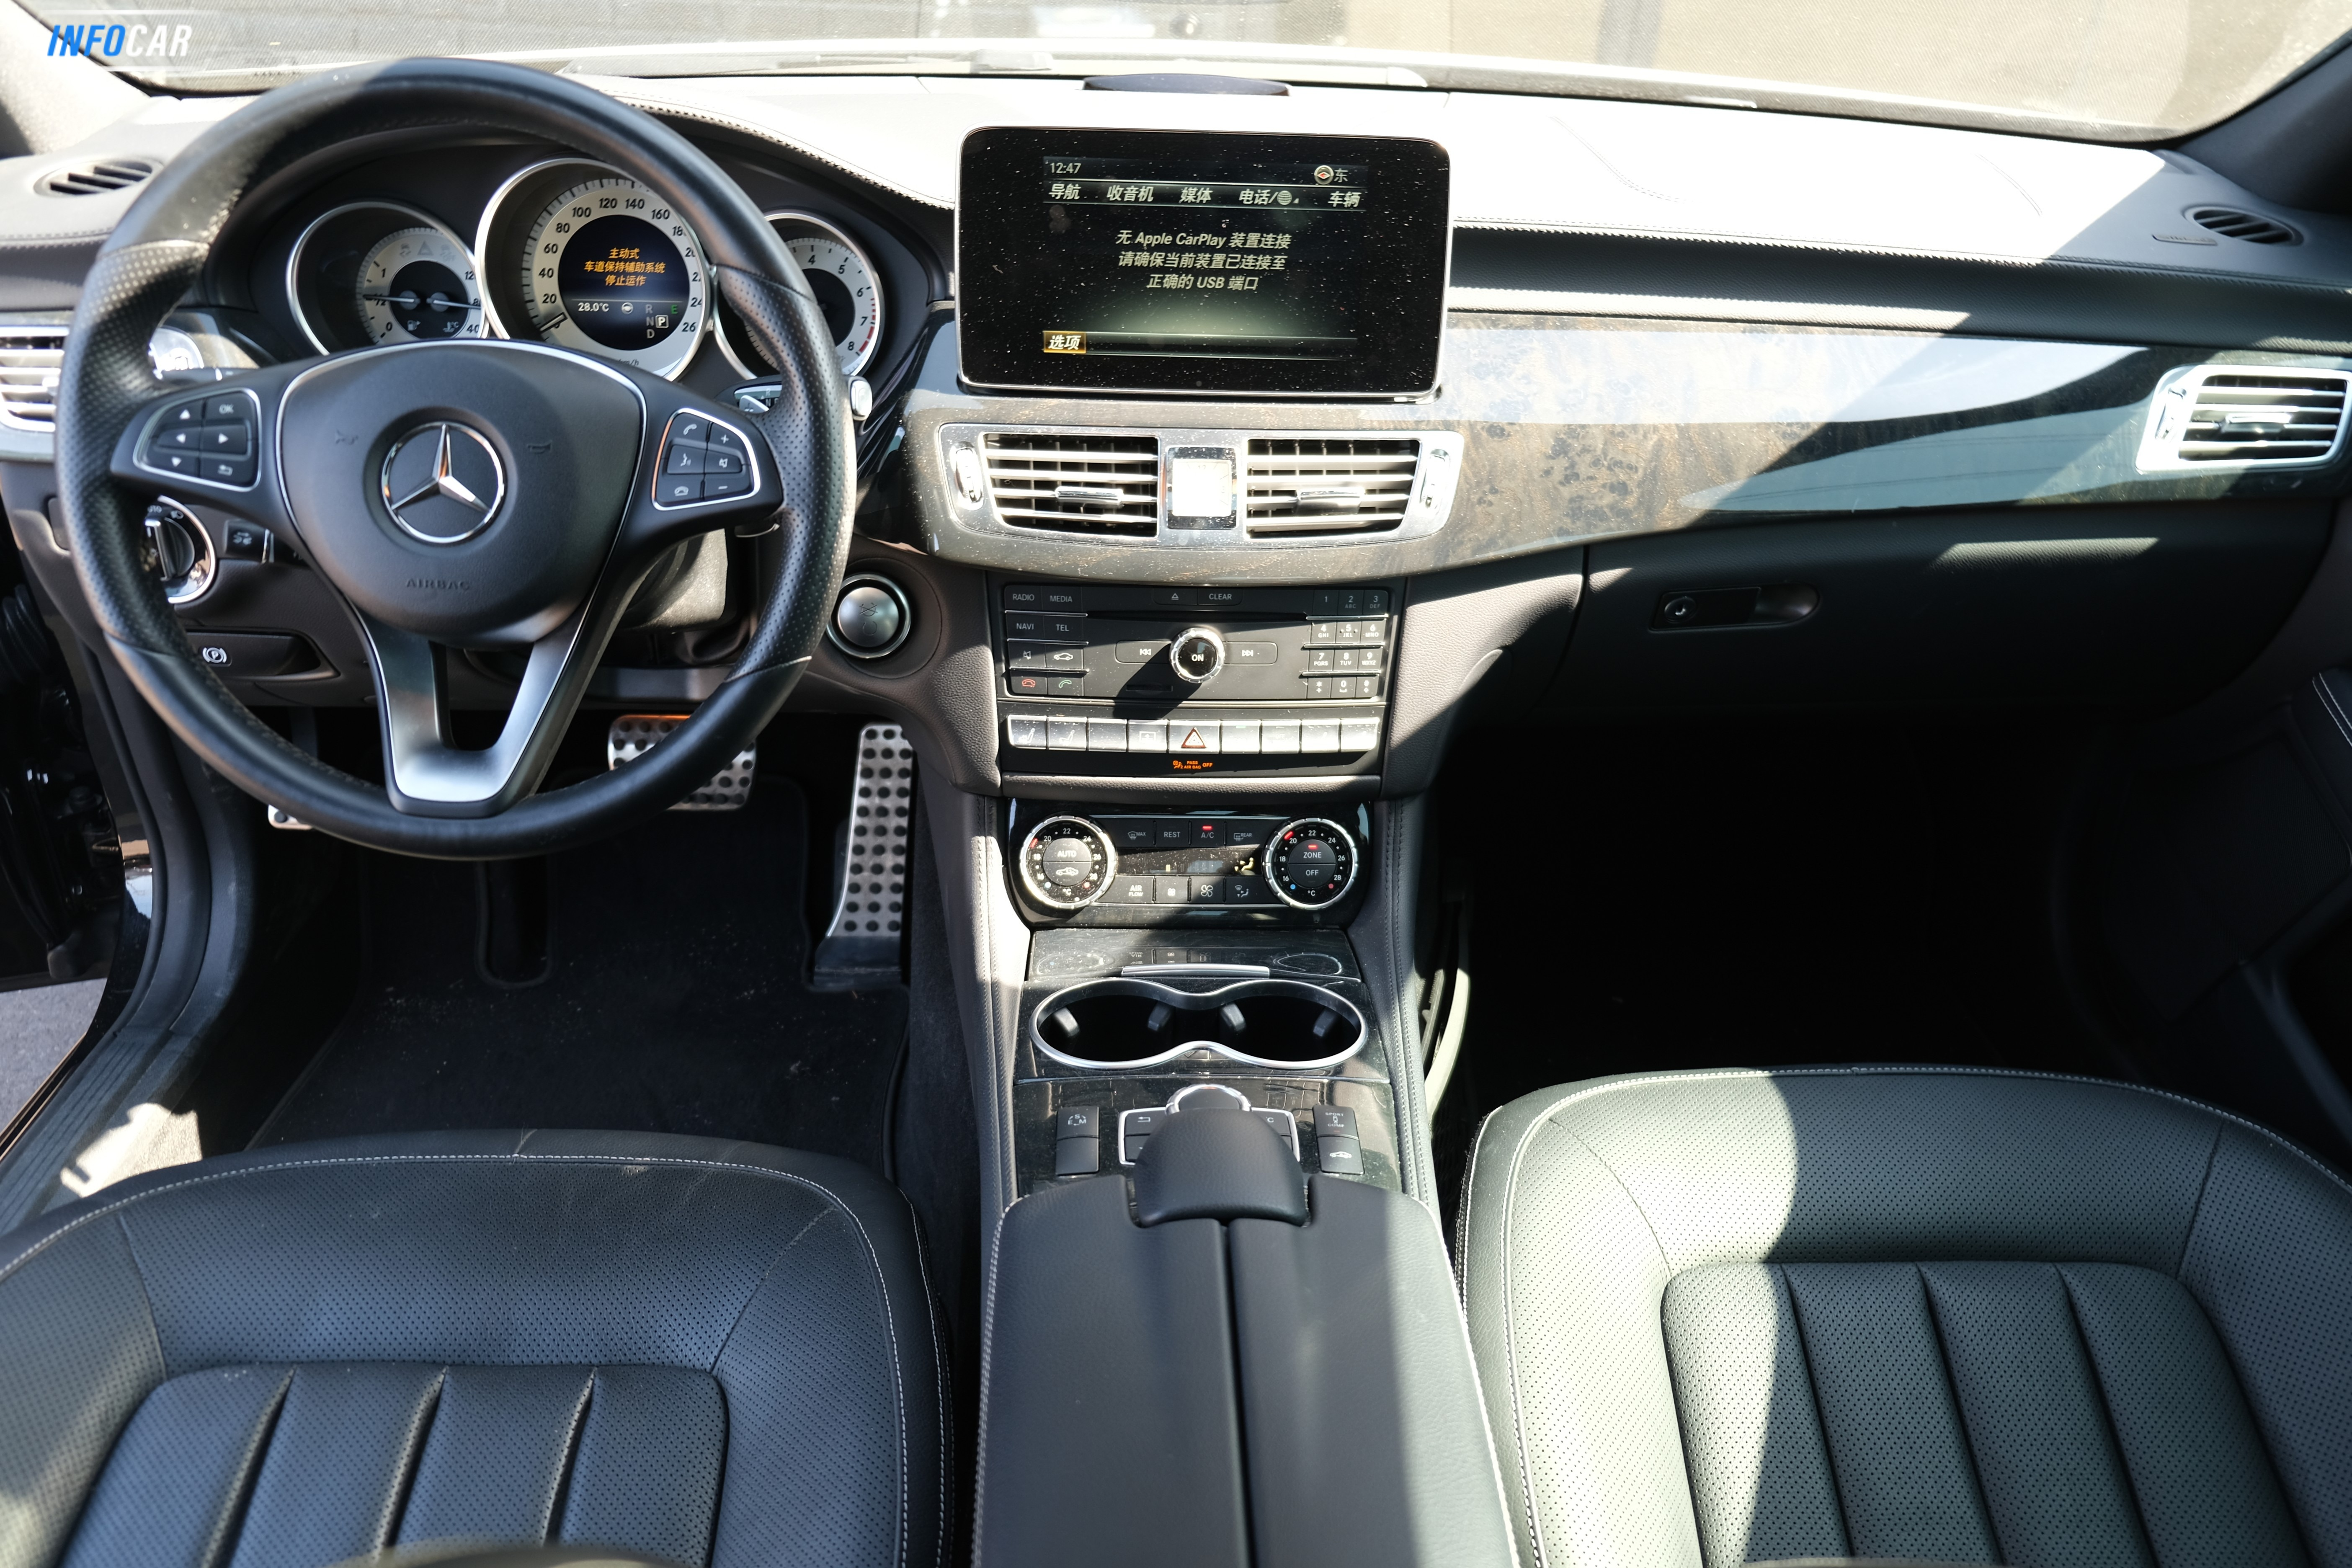 2016 Mercedes-Benz CLS-Class 550  - INFOCAR - Toronto's Most Comprehensive New and Used Auto Trading Platform